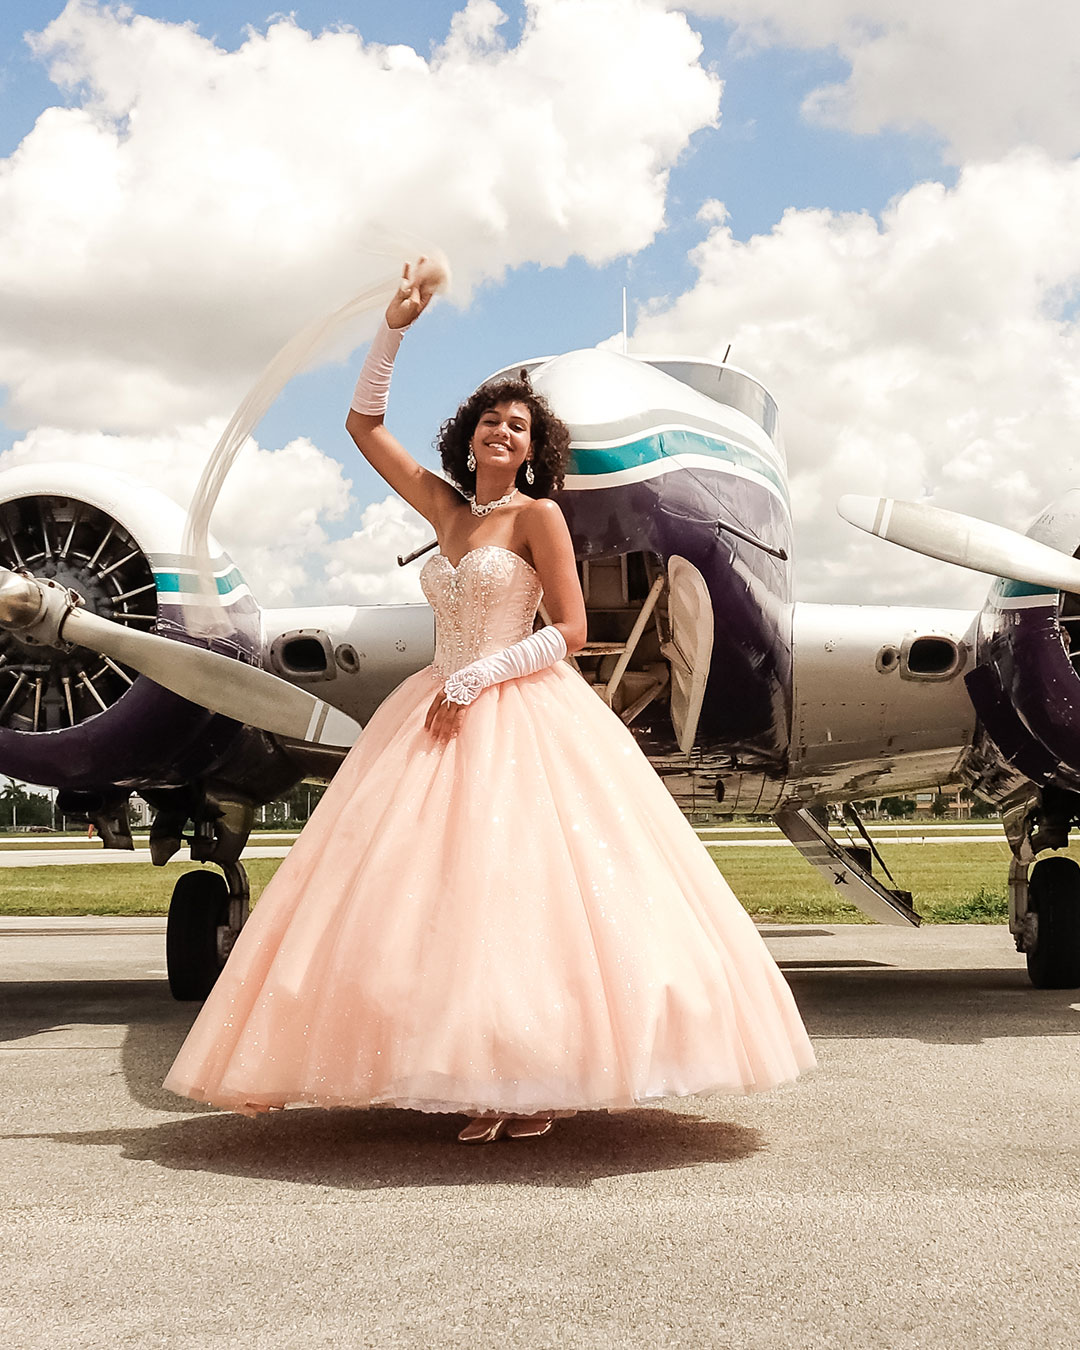 quinceanera photography in kendall